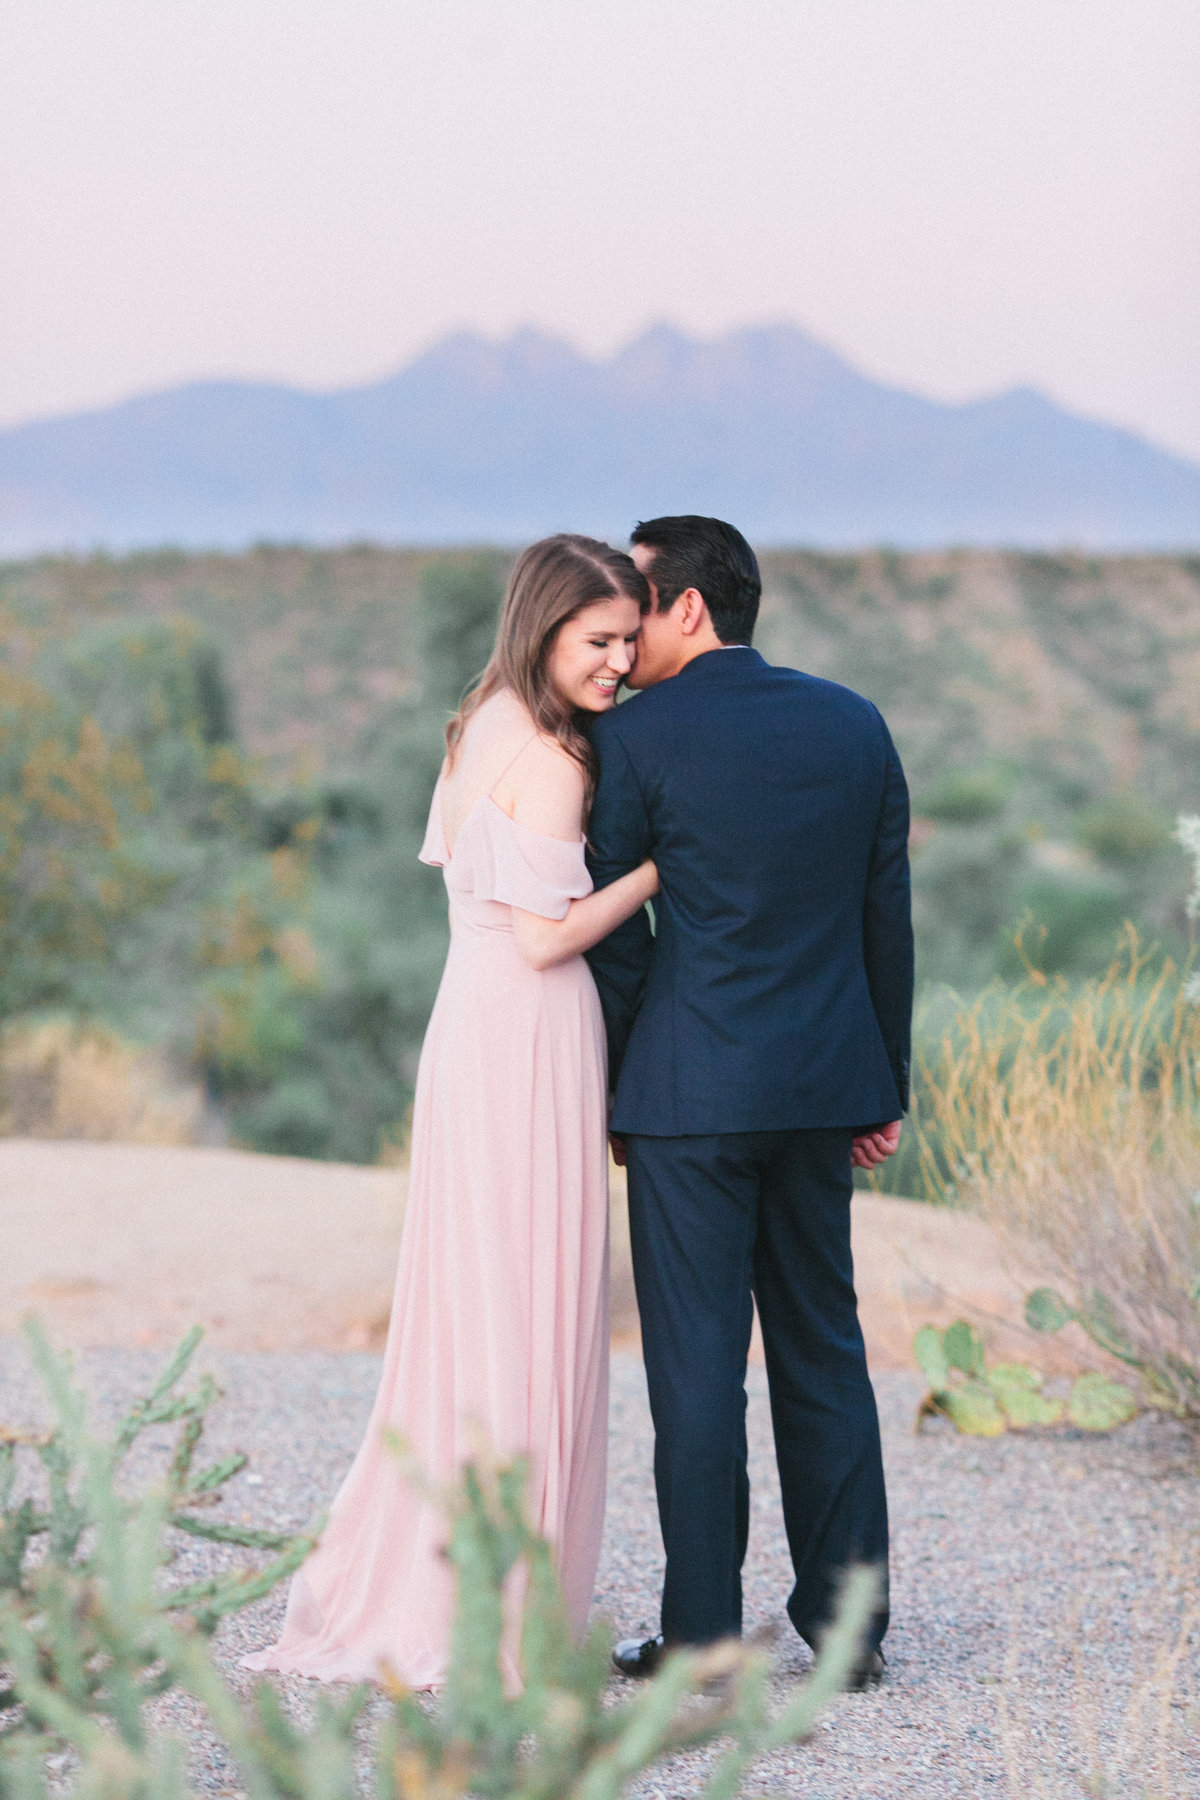 BarrientosEngagementWEBSITE-12